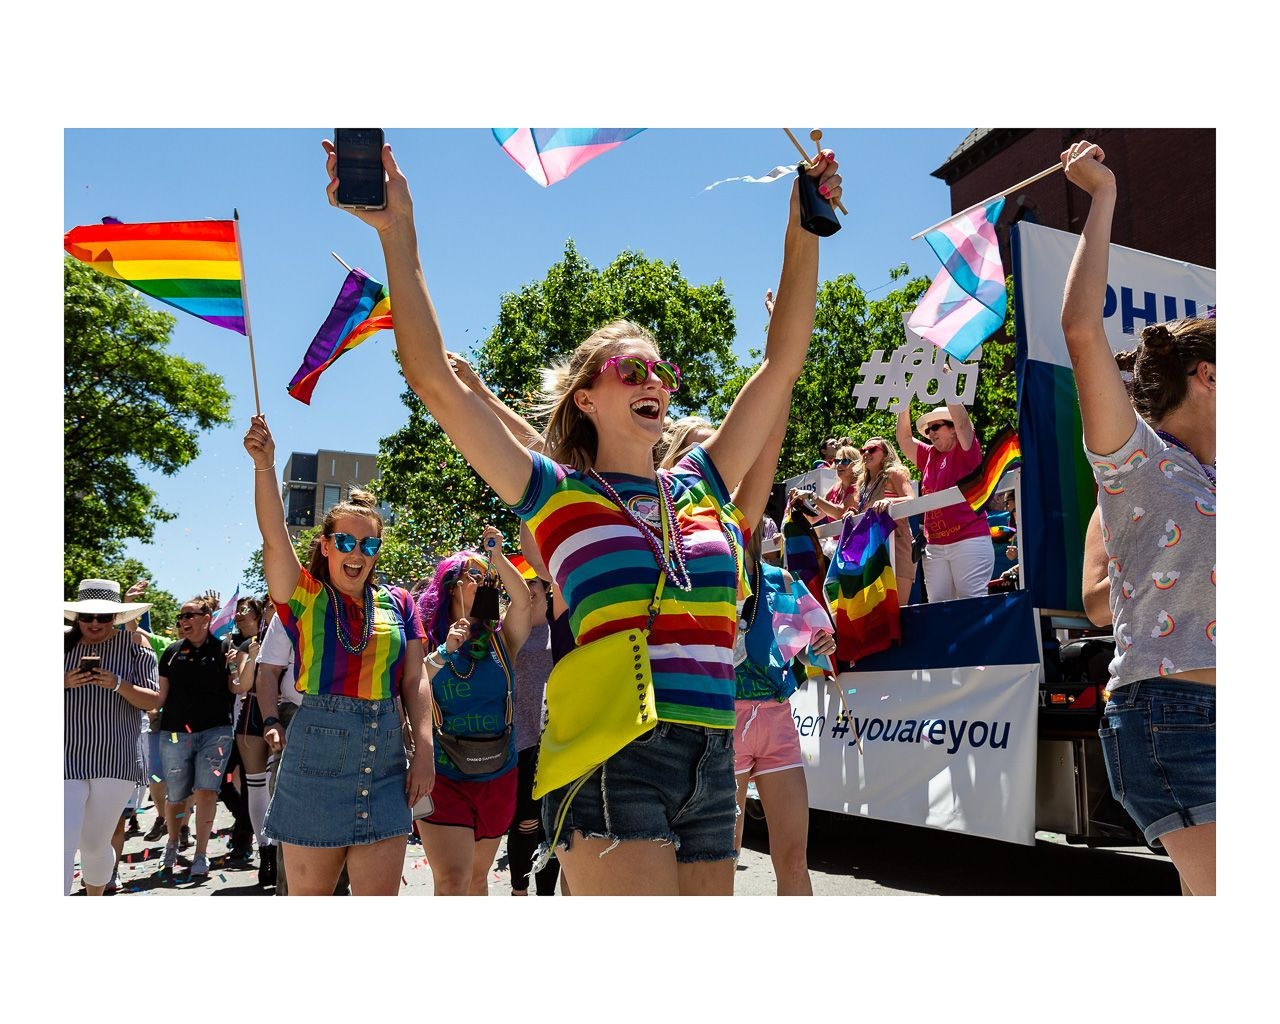 Boston Pride 2019 - wht border - Livebooks20190608 - 04.jpg